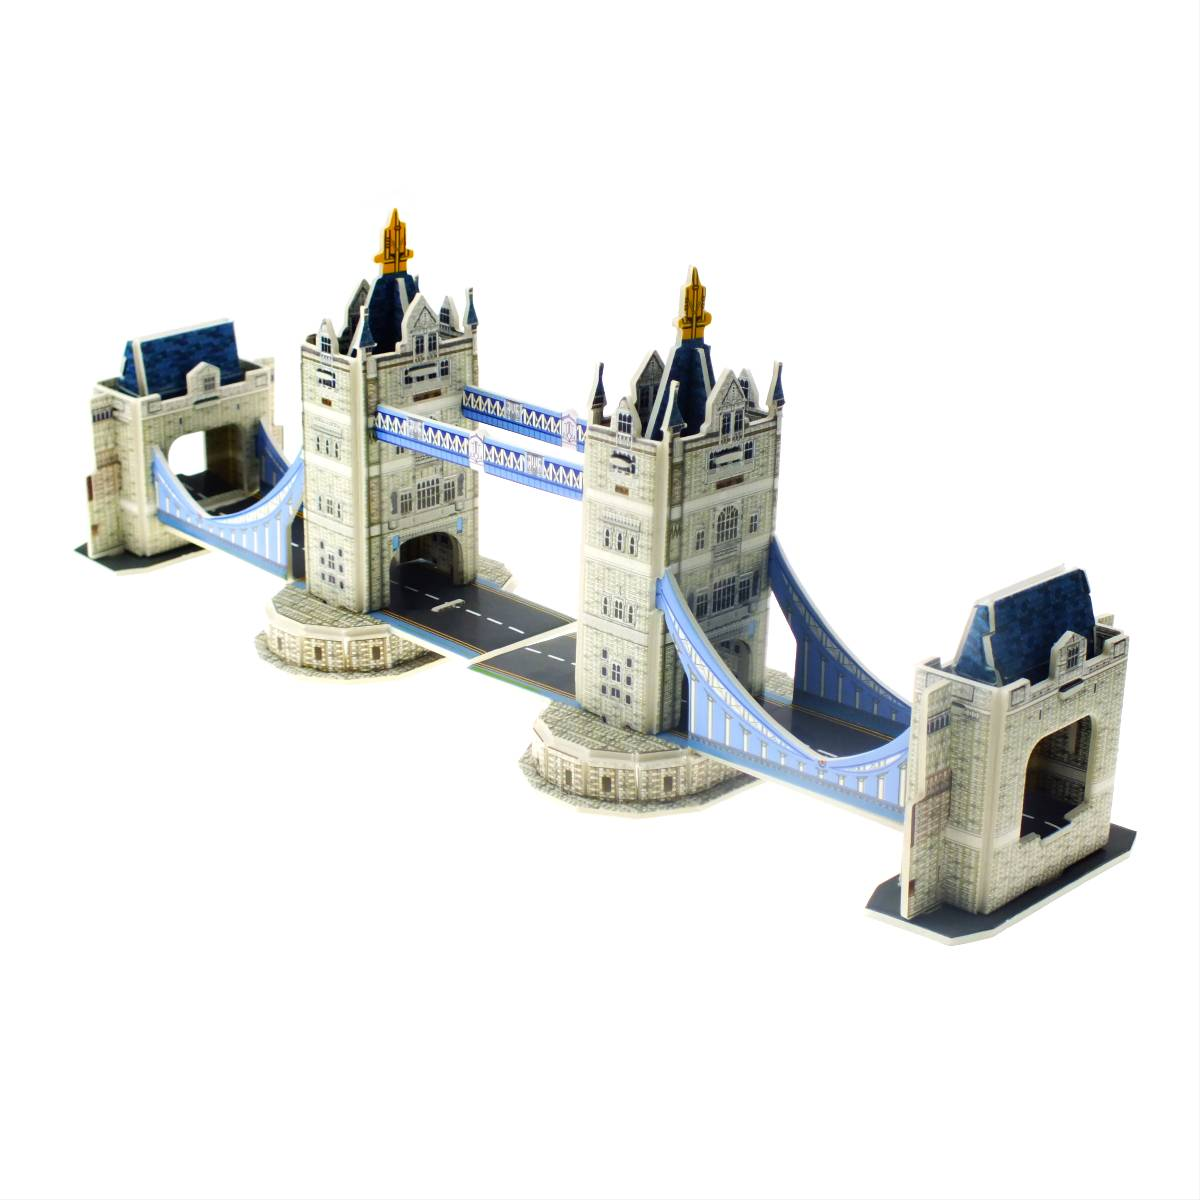 3D Mini Puzzle | LONDON BRIDGE | Mainan Kecerdasan Anak - 1690-130